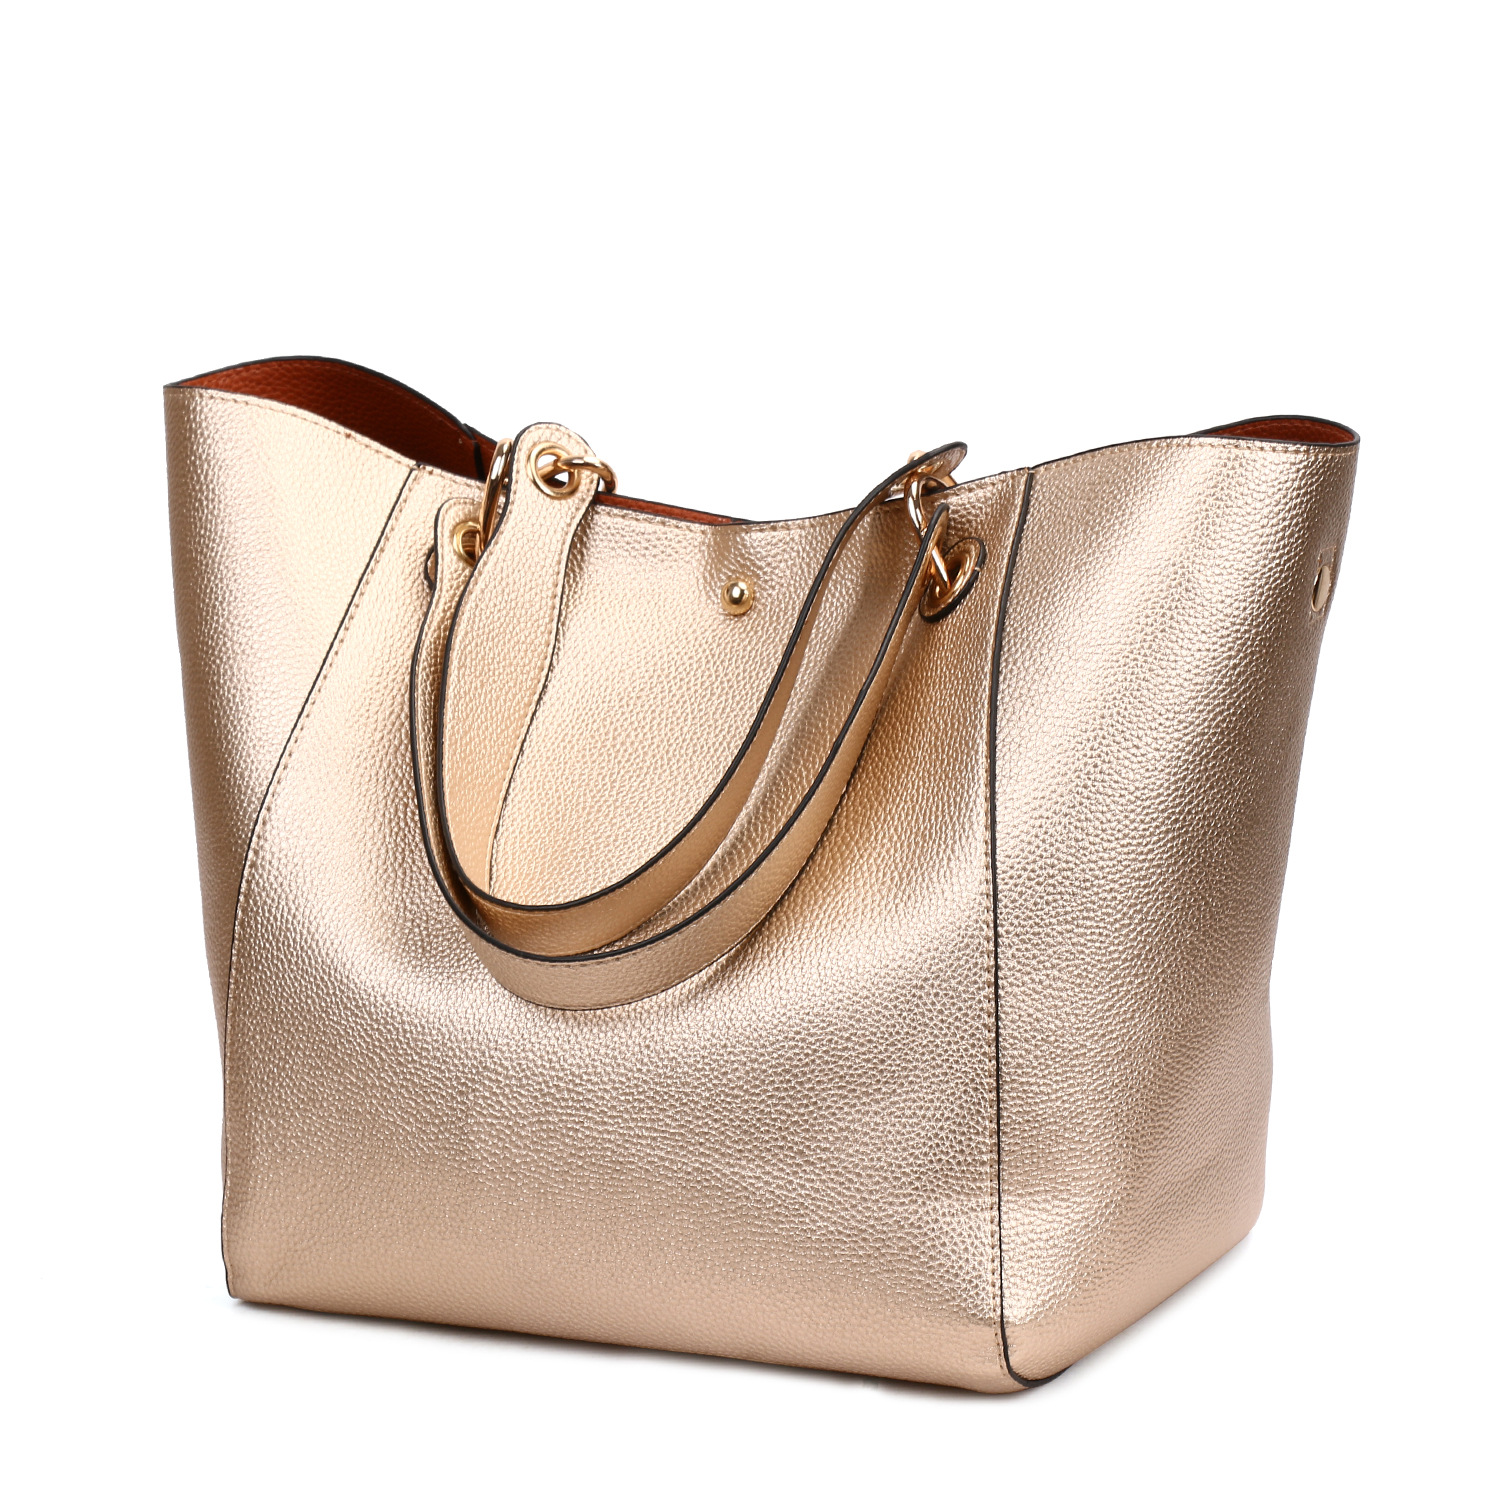 hot Fashion lady Bag Handbags Leather s For  hot Shoulder  Female Large Capacity Tote Ladies Shopping s 2 Setshot Fashion lady Bag Handbags Leather s For  hot Shoulder  Female Large Capacity Tote Ladies Shopping s 2 Sets